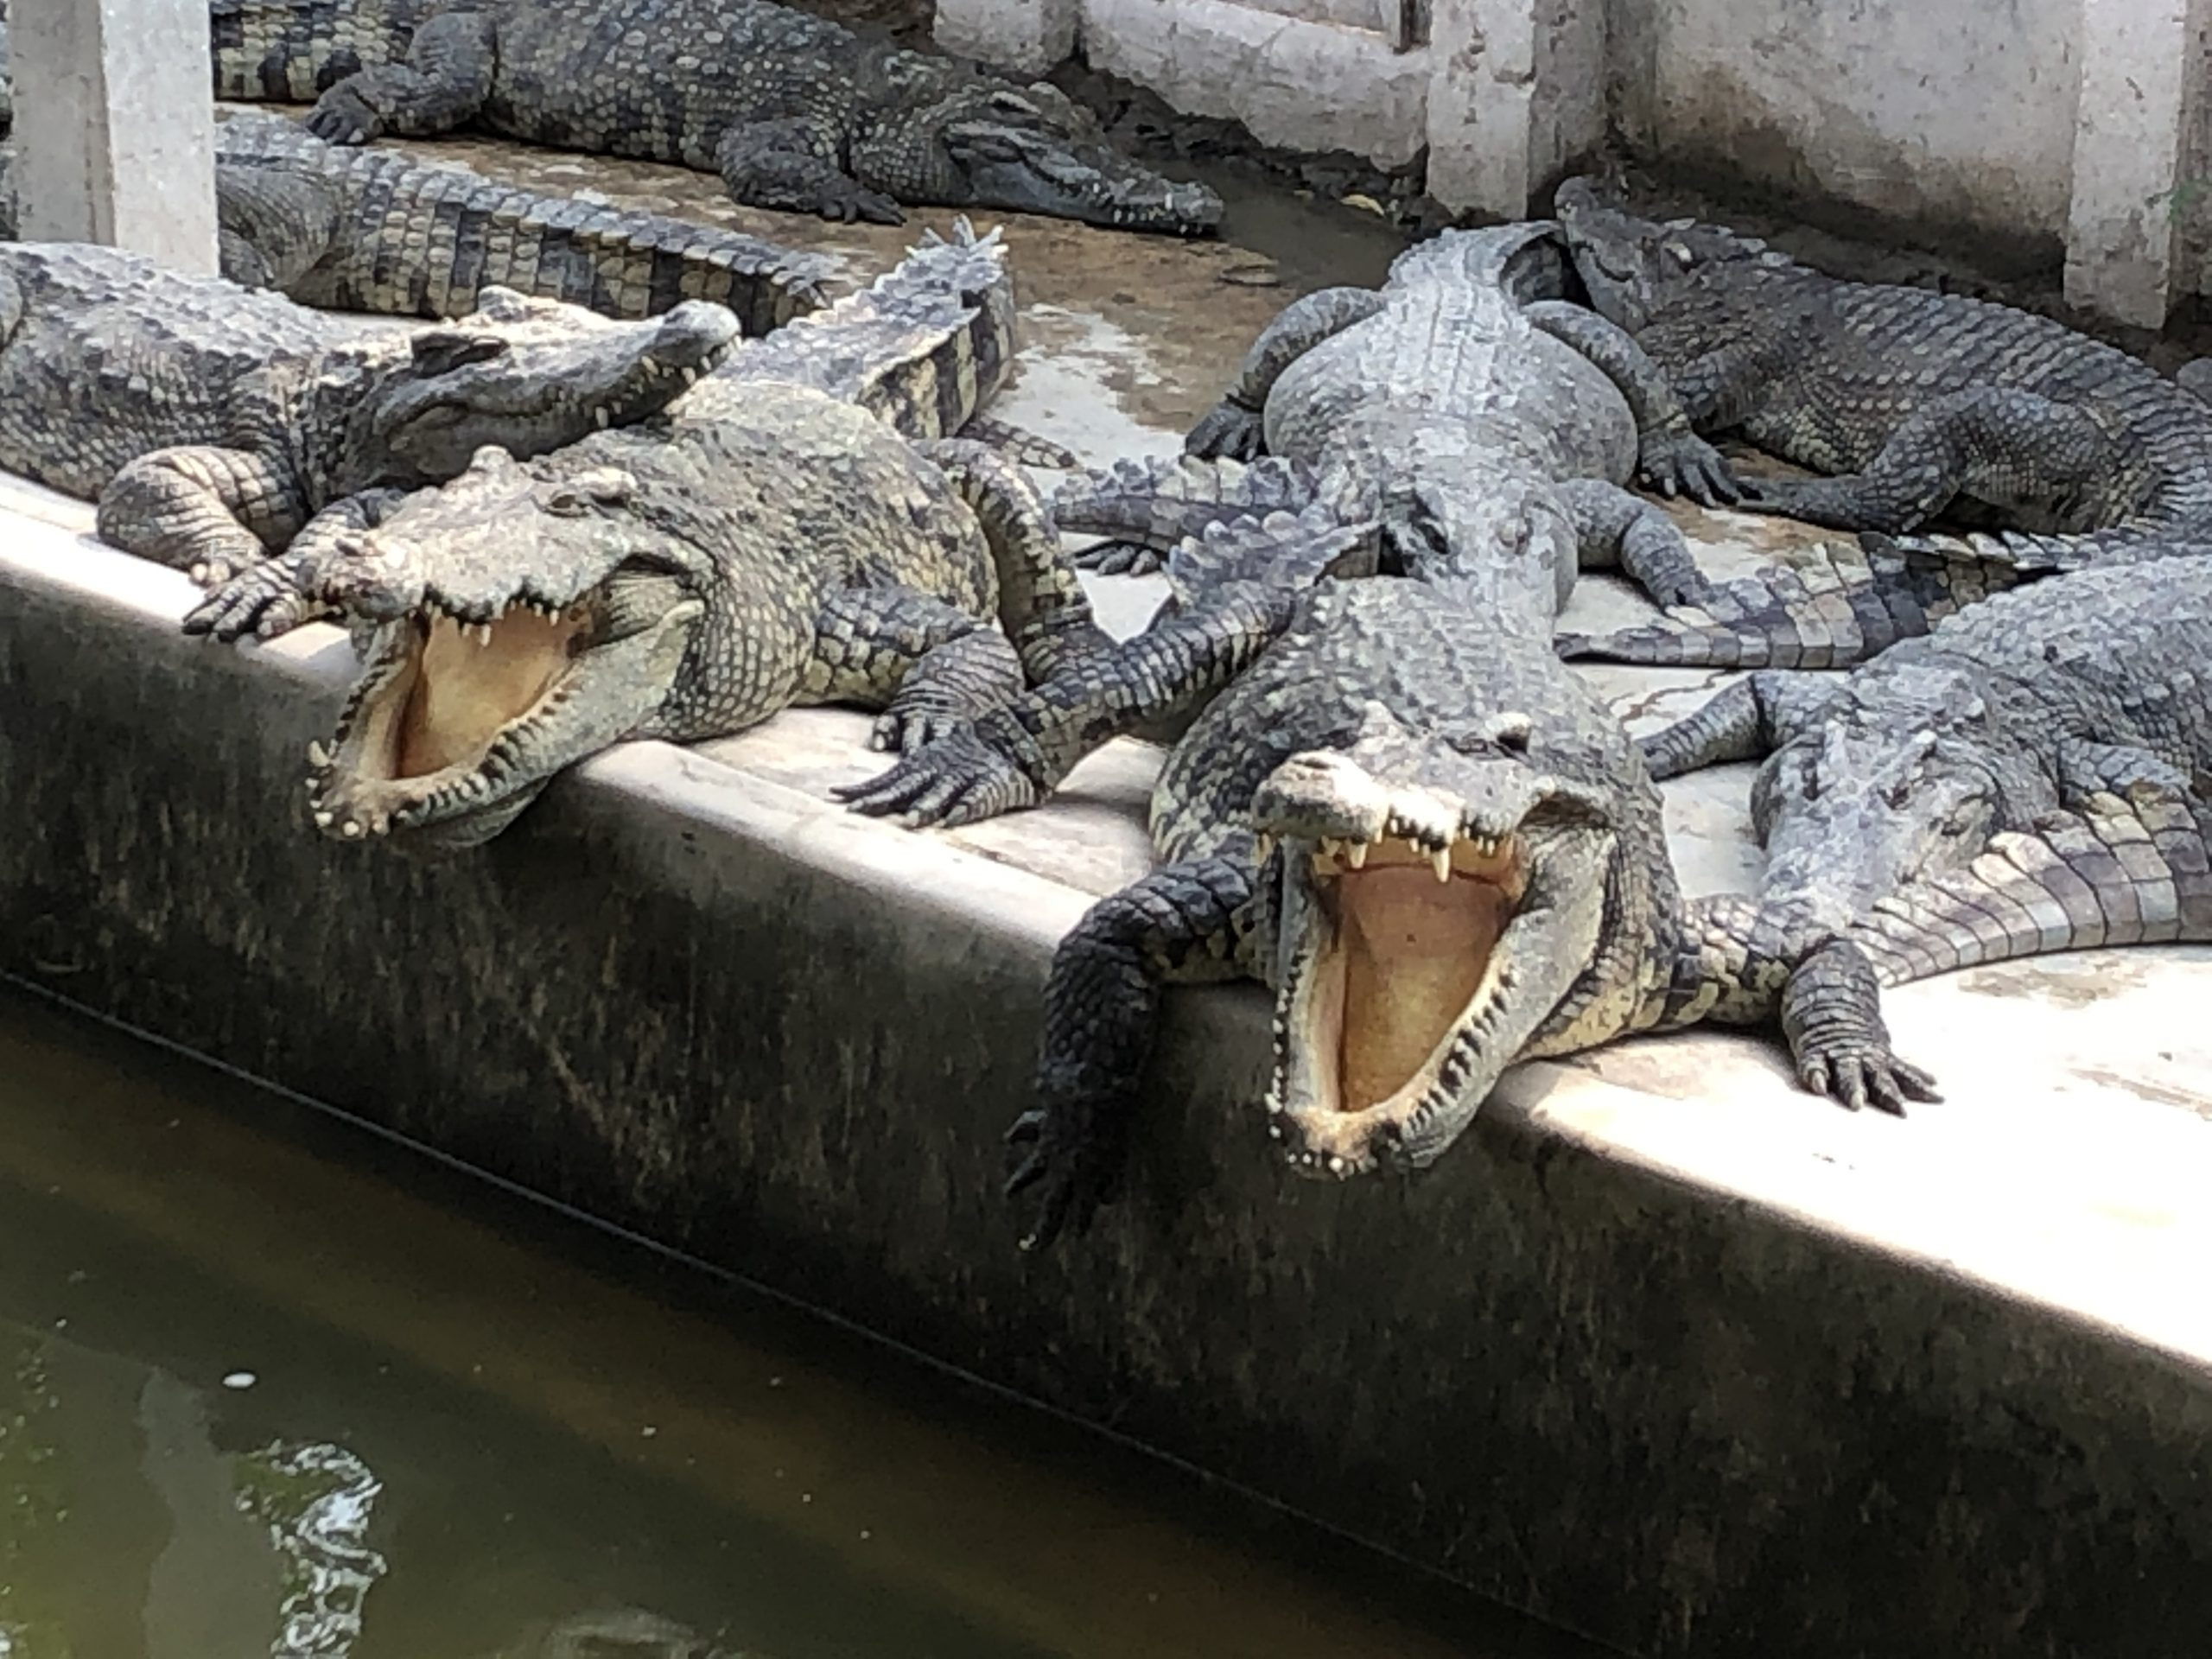 Overview of Crocodile Farm